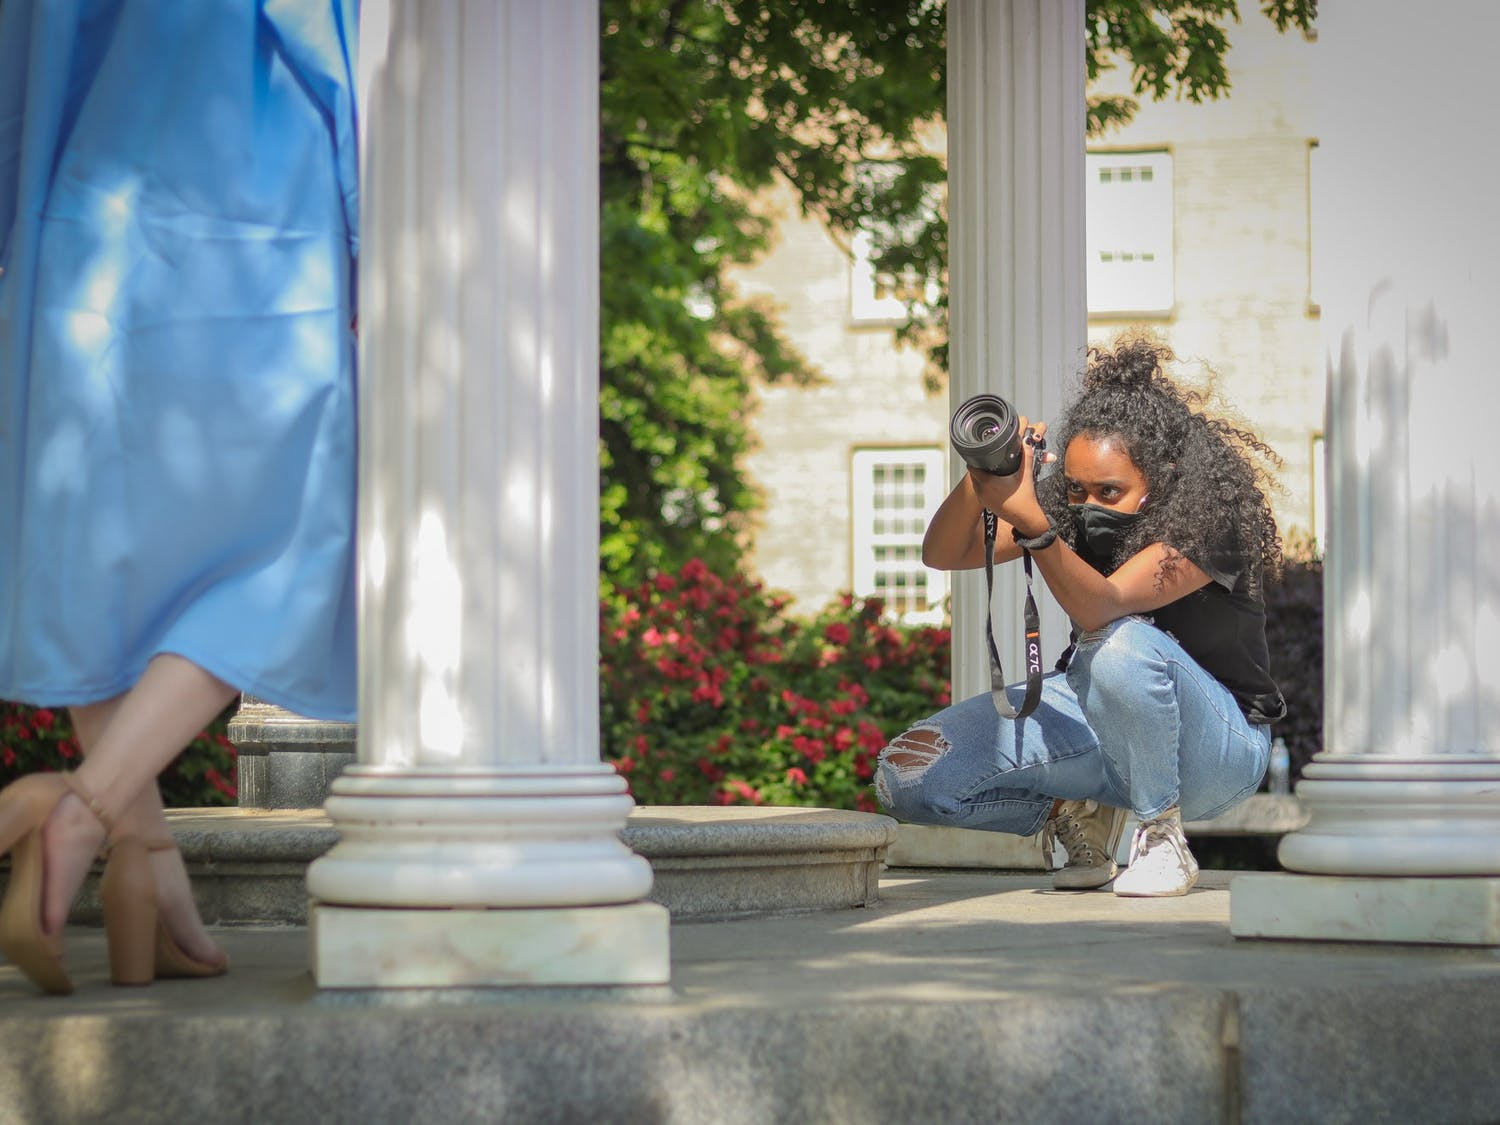 Hanna Wondmagegn, a UNC senior journalism major, takes graduation pictures of Deanna Upchurch, a senior peace, war and defense major at the Old Well.